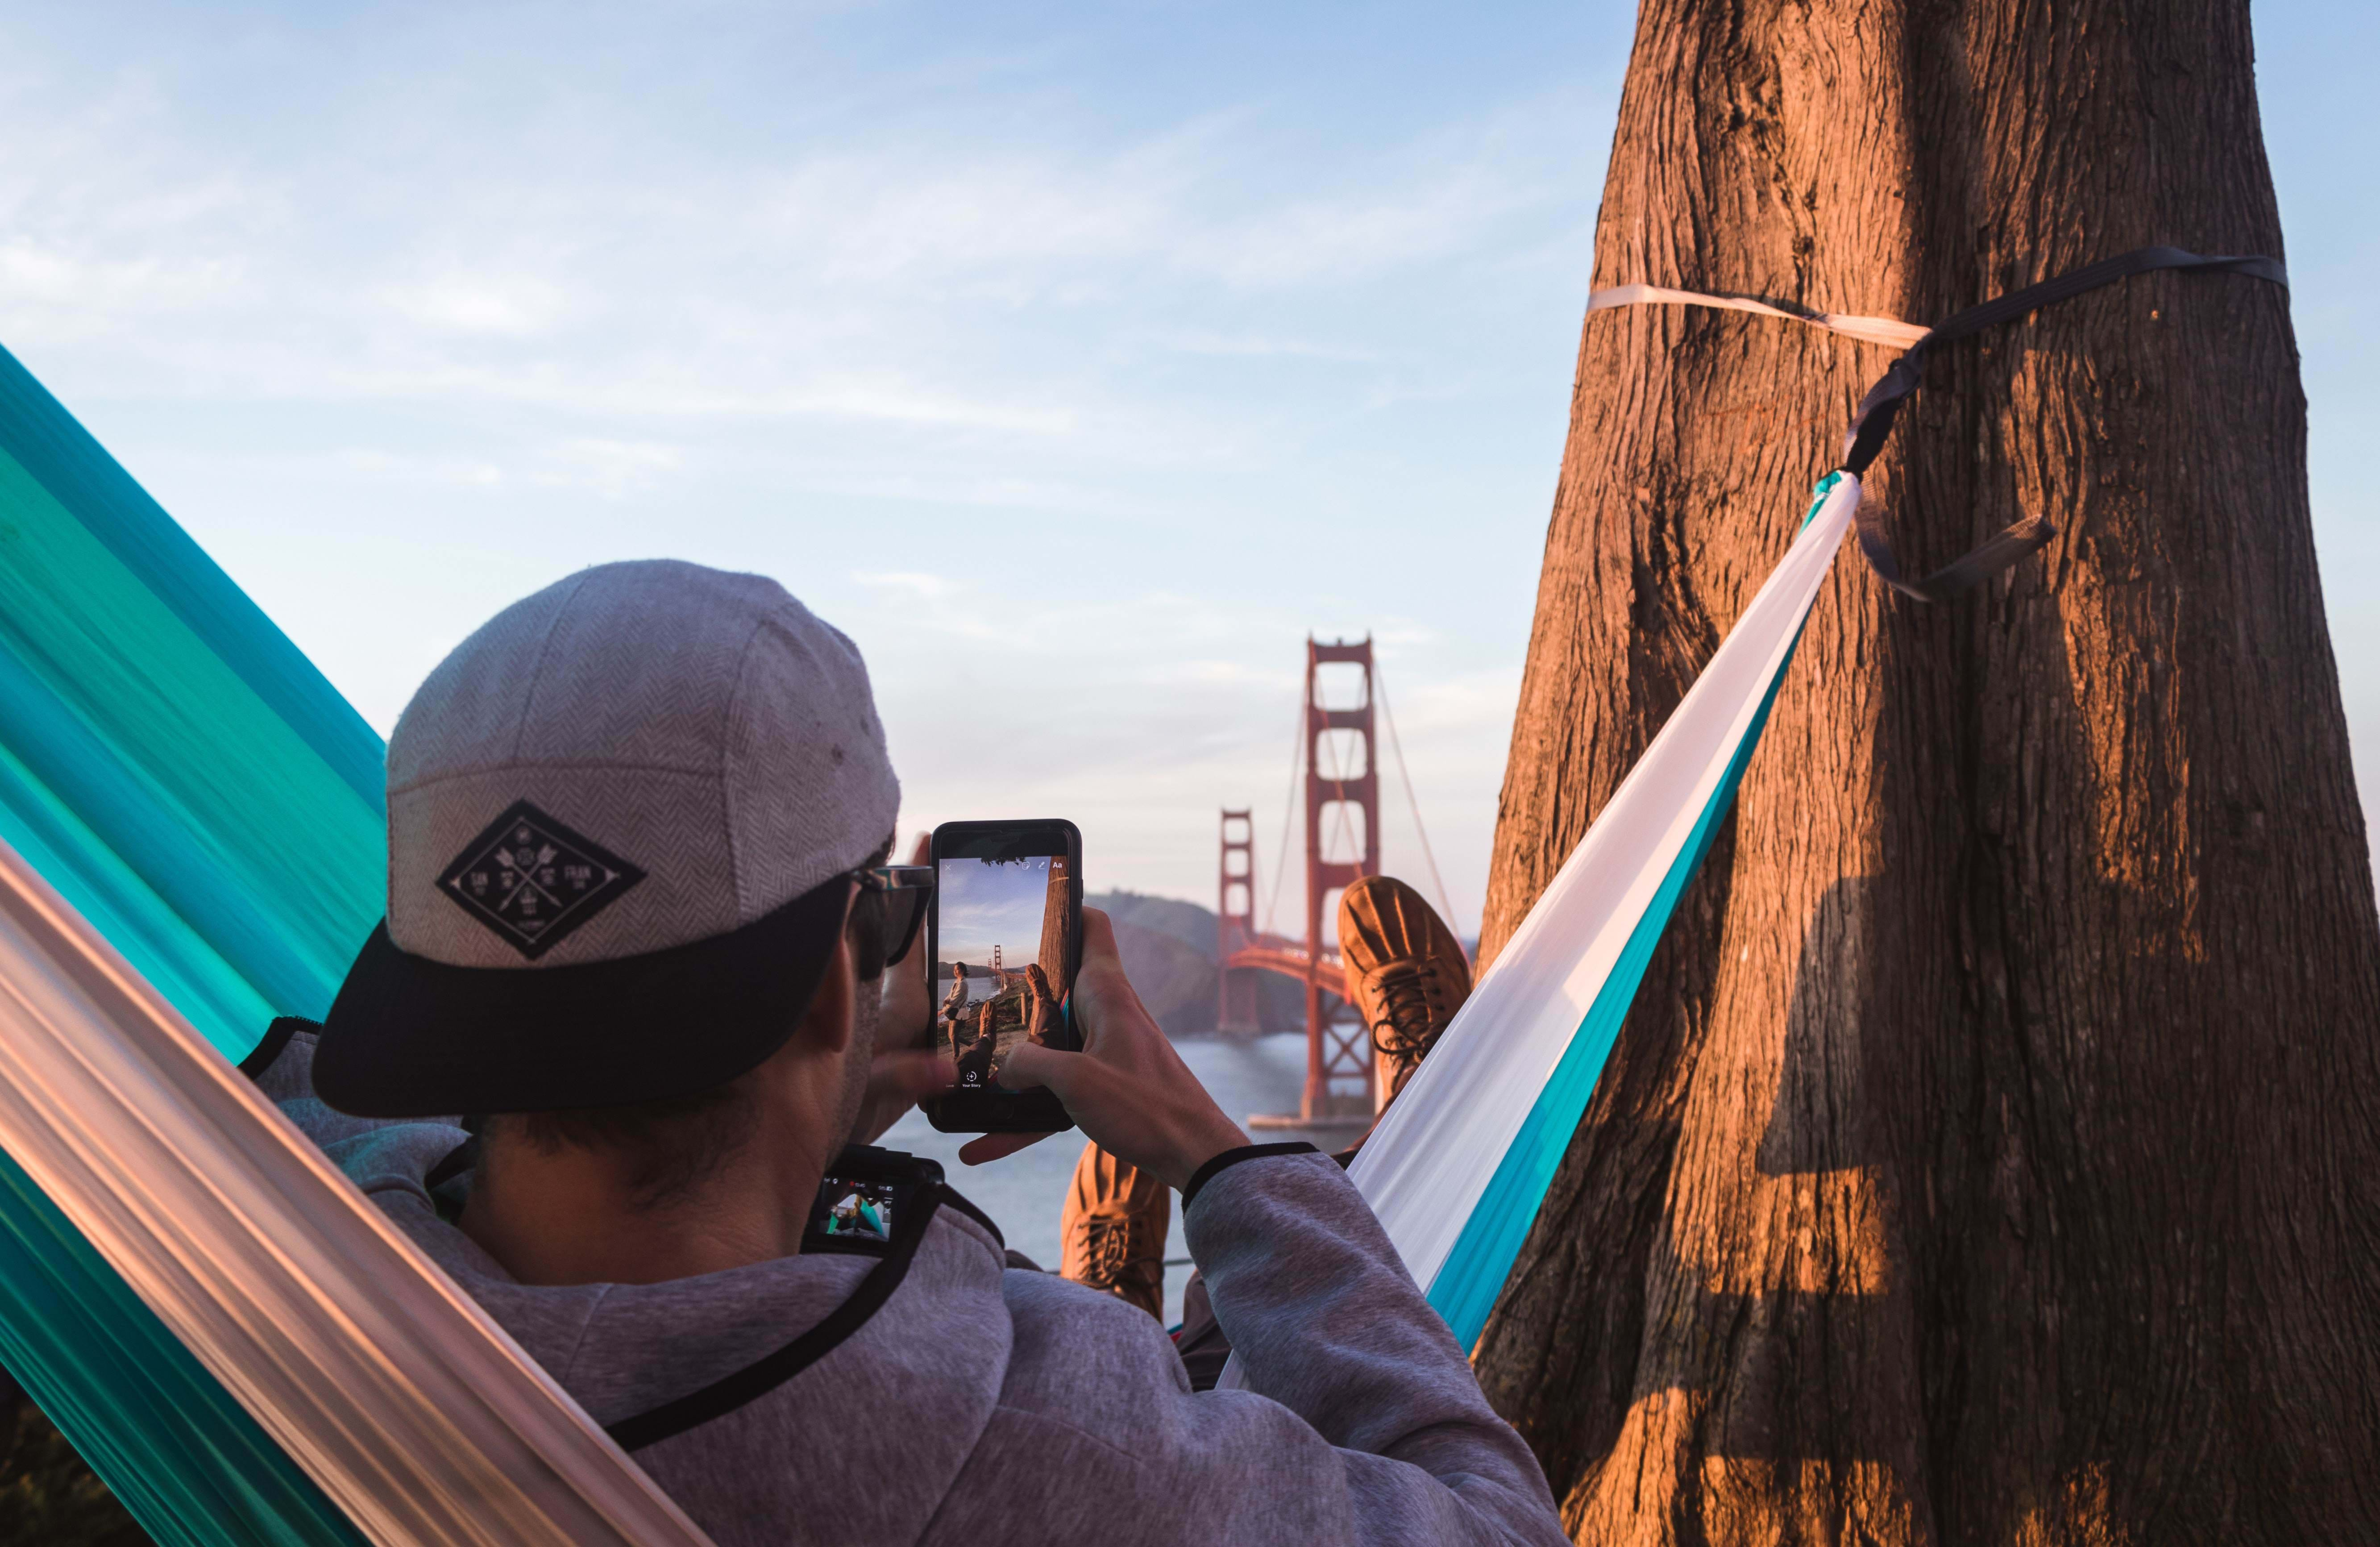 san-francisco-man-hammock-bridge-sidebar